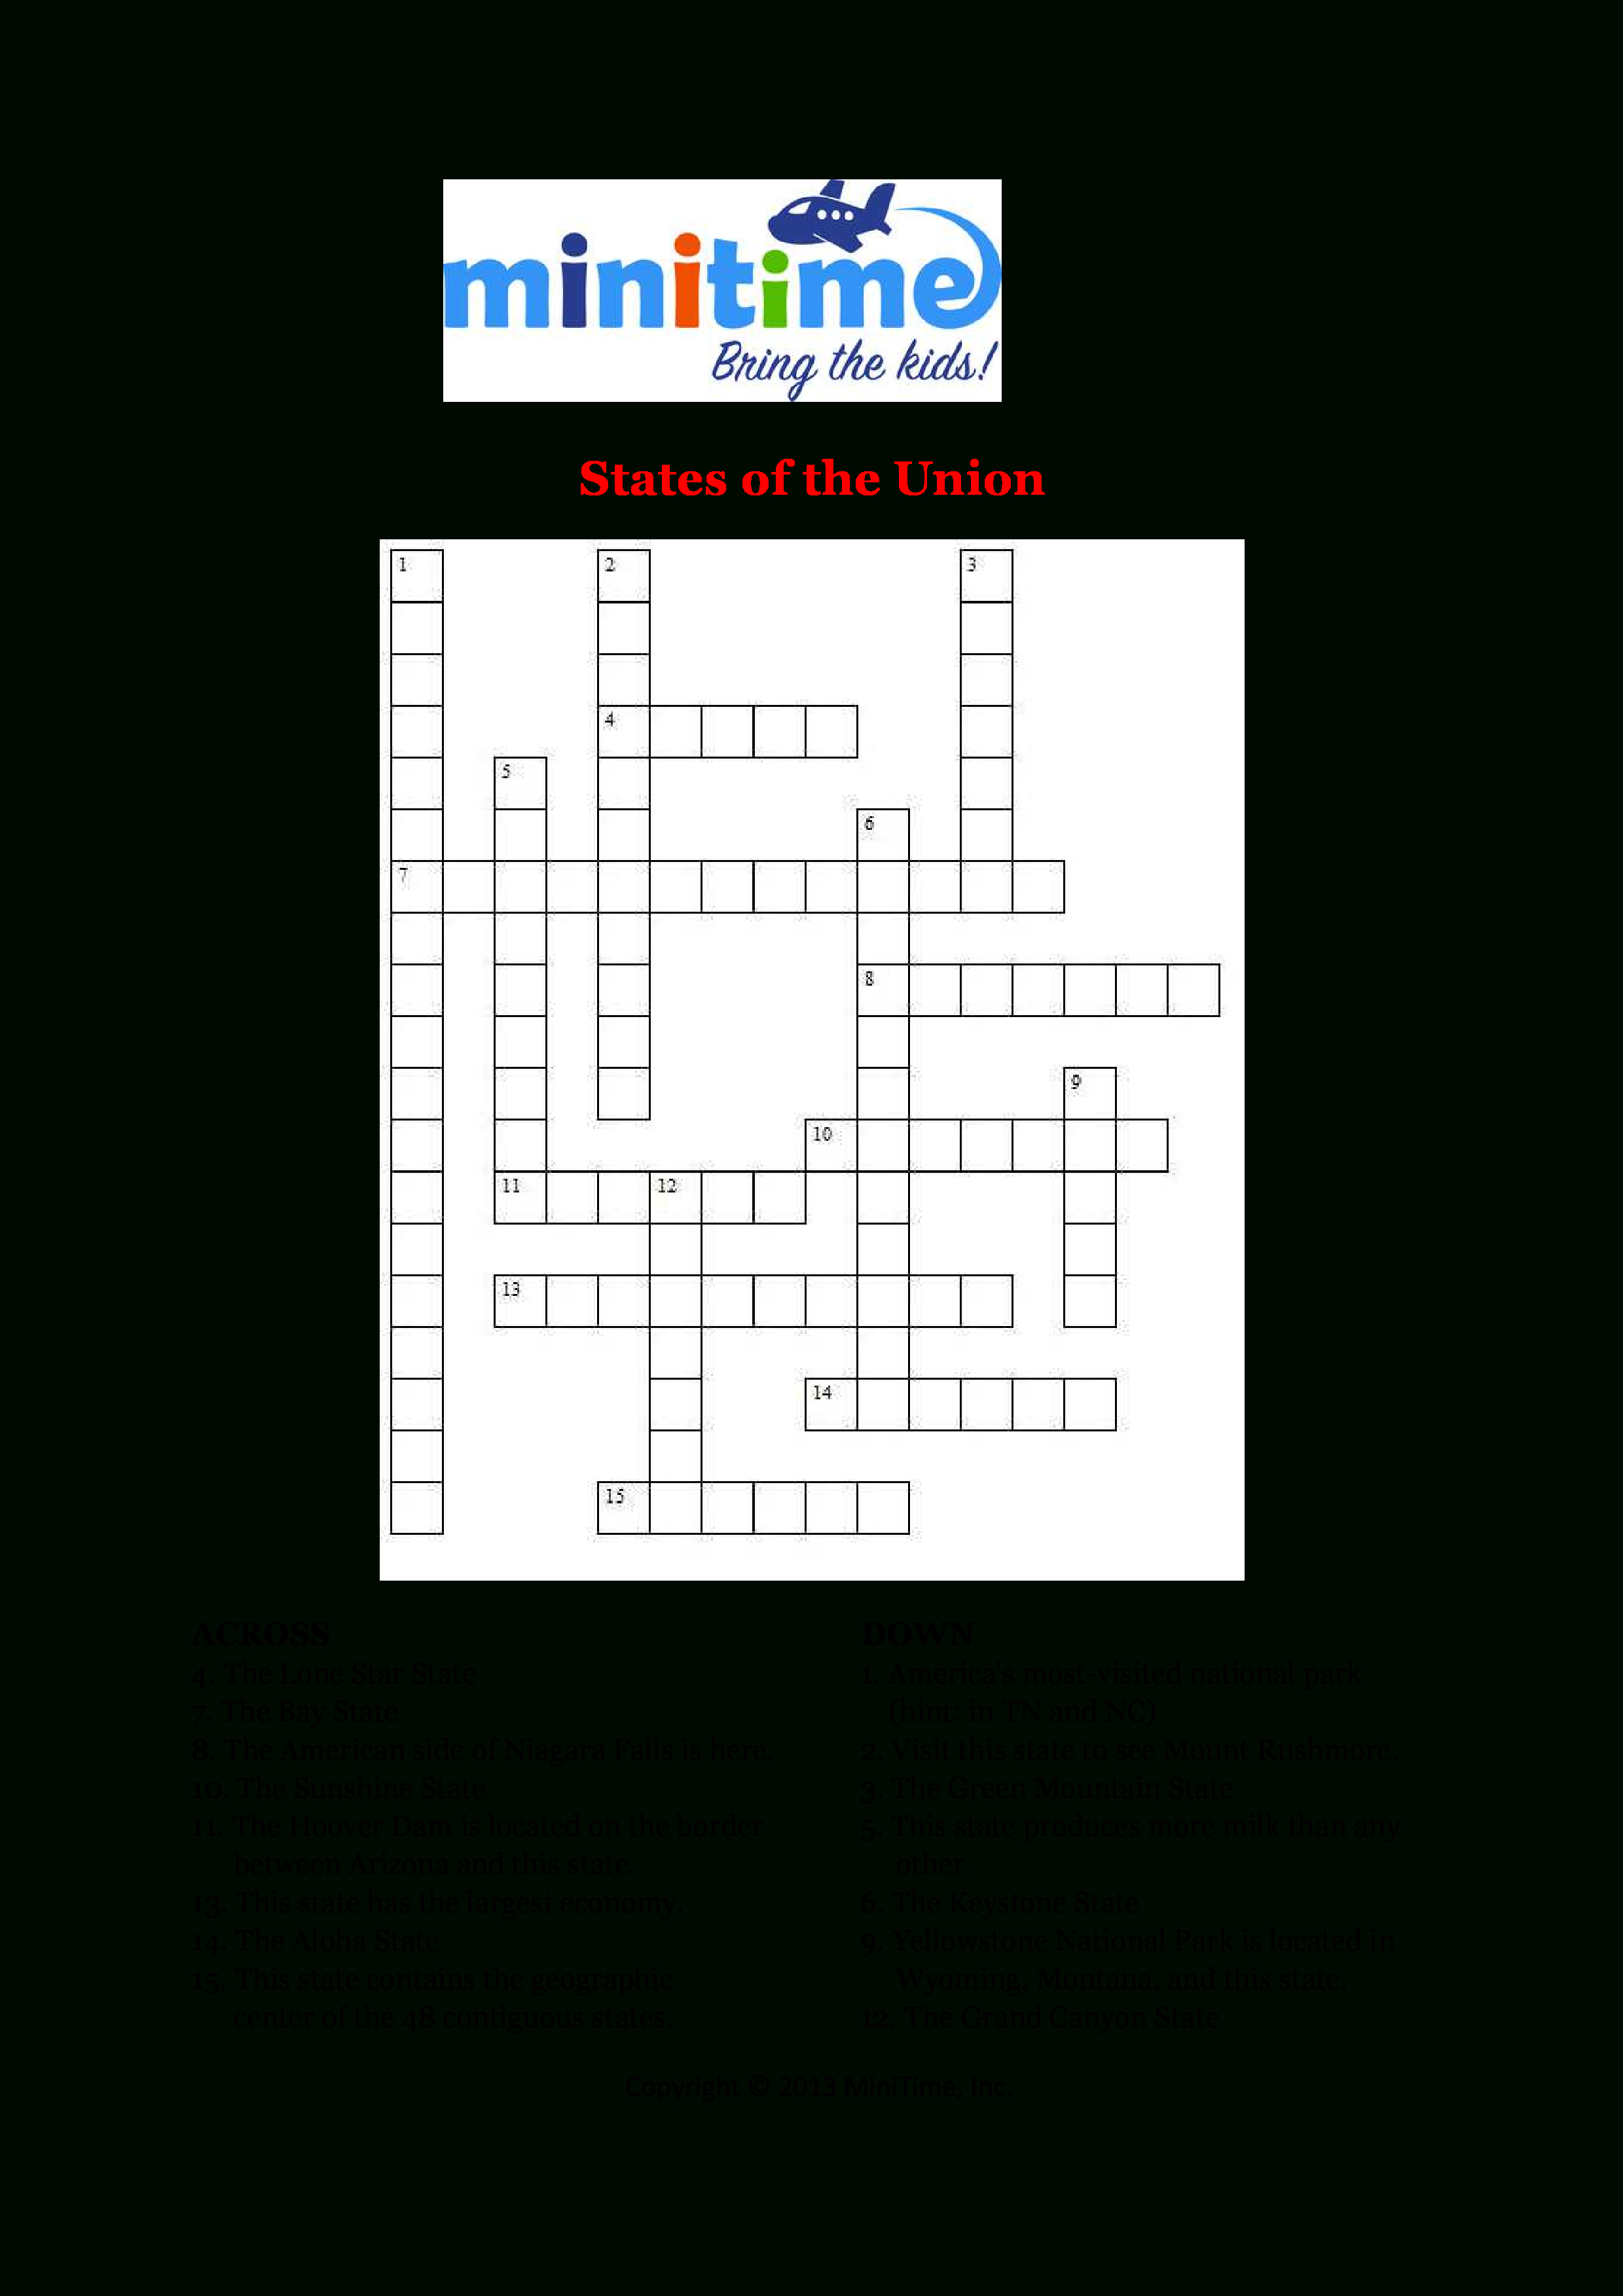 Us States Fun Facts Crossword Puzzles | Free Printable Travel - Printable 50 States Crossword Puzzles